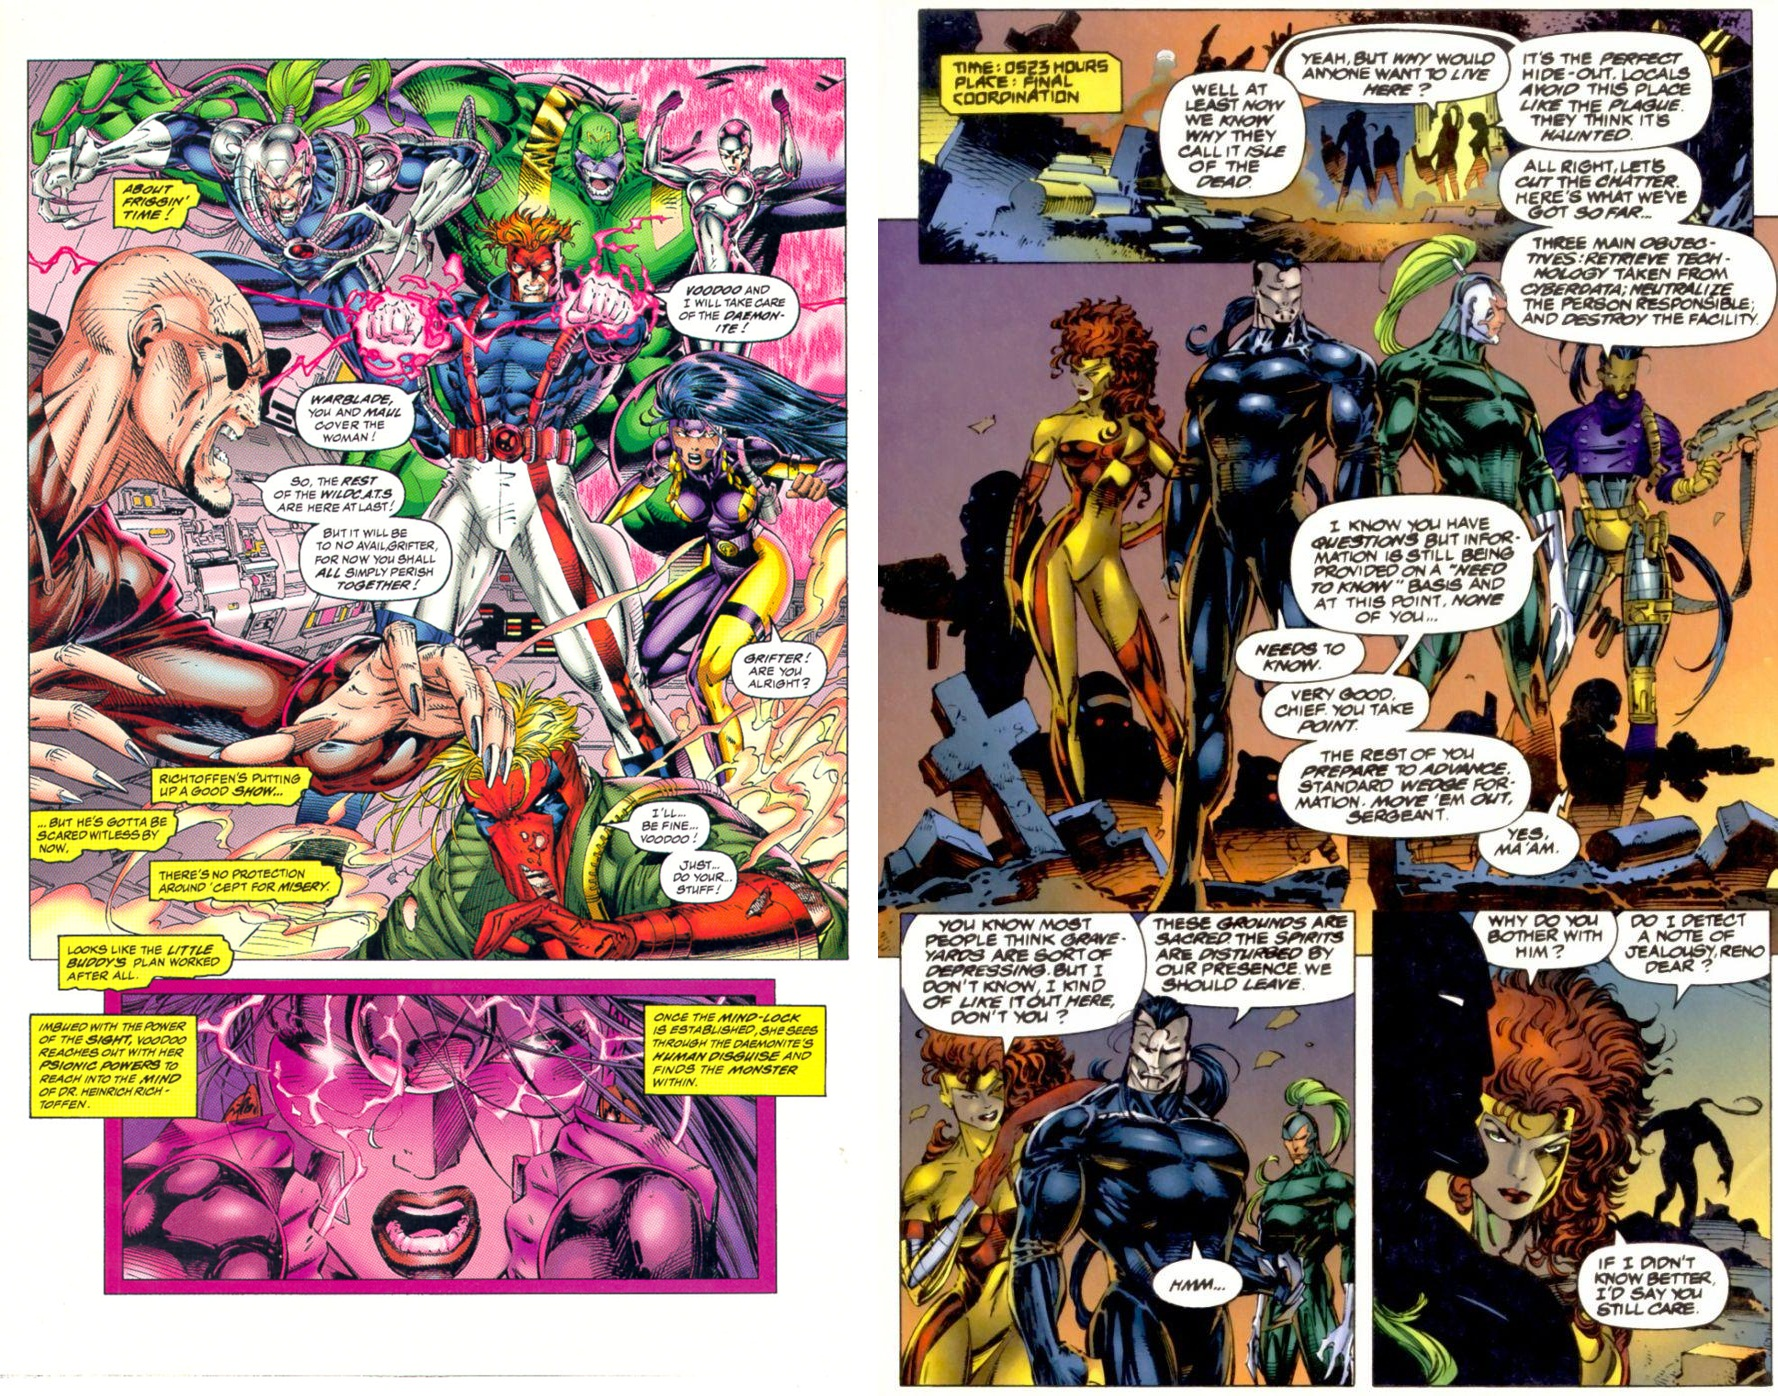 WILDC.A.T.S Cyberforce Killer Instinct review